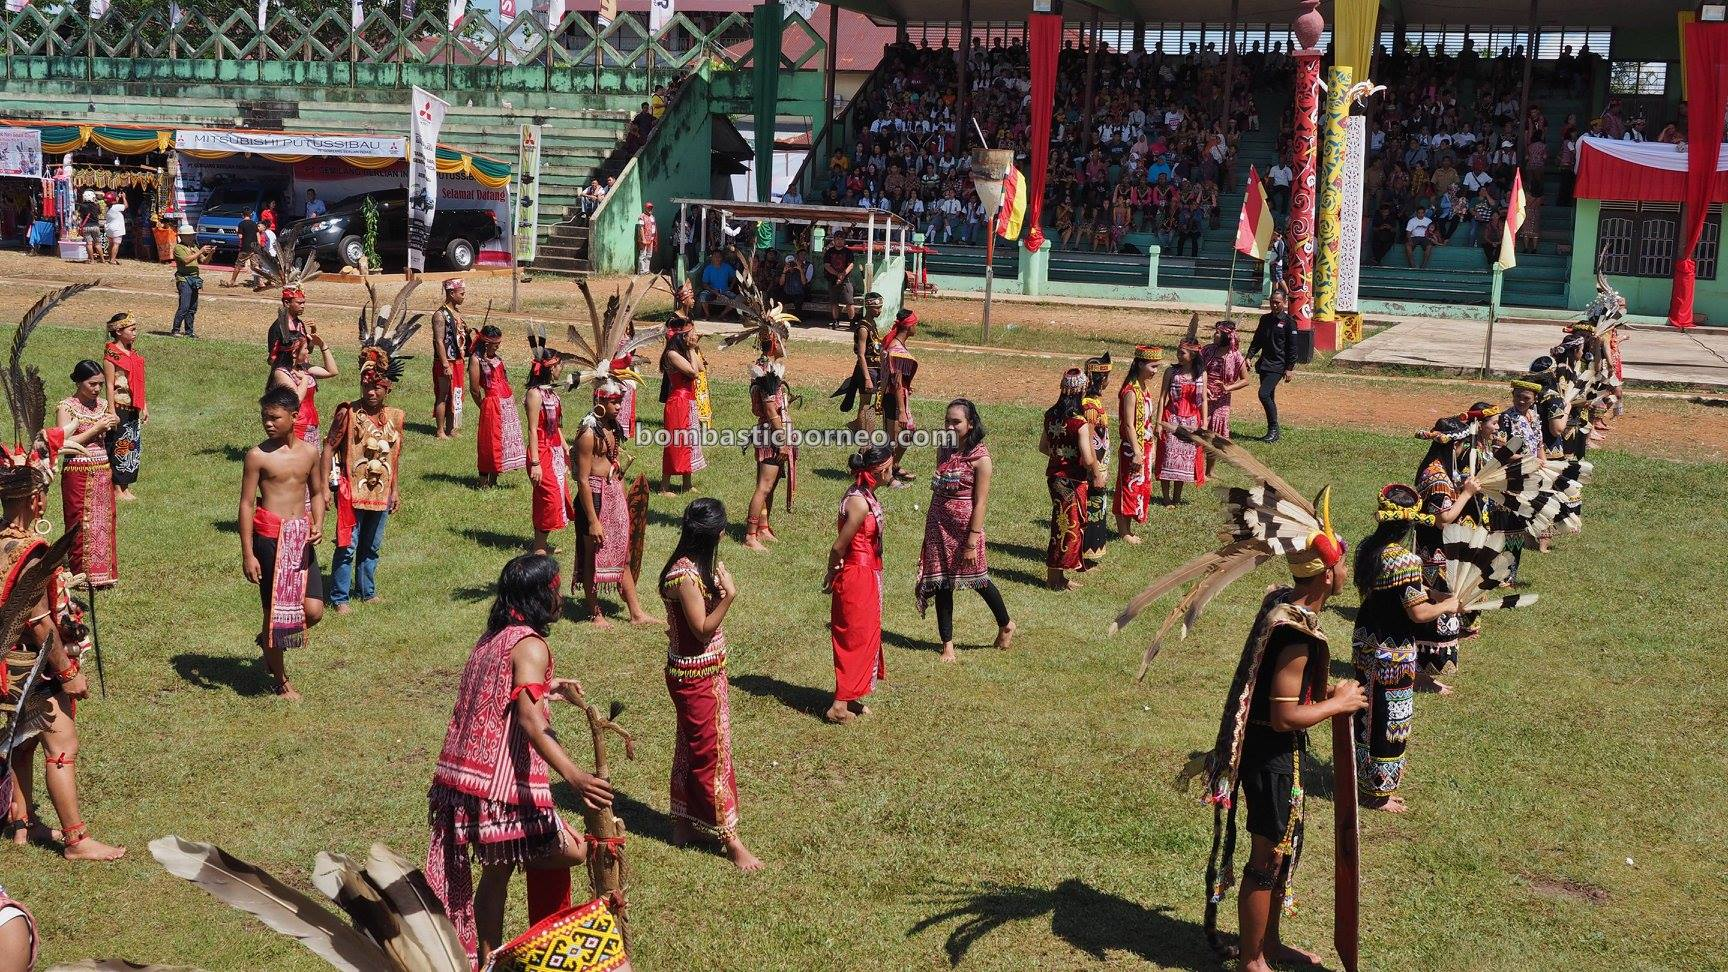 Gawai Dayak Kapuas Hulu, authentic, culture, Borneo, Indonesia, Kalimantan Barat, Putussibau, destination, native, tribal, Obyek wisata, Tourism, travel guide, Trans Border, 婆罗洲达雅克文化旅游